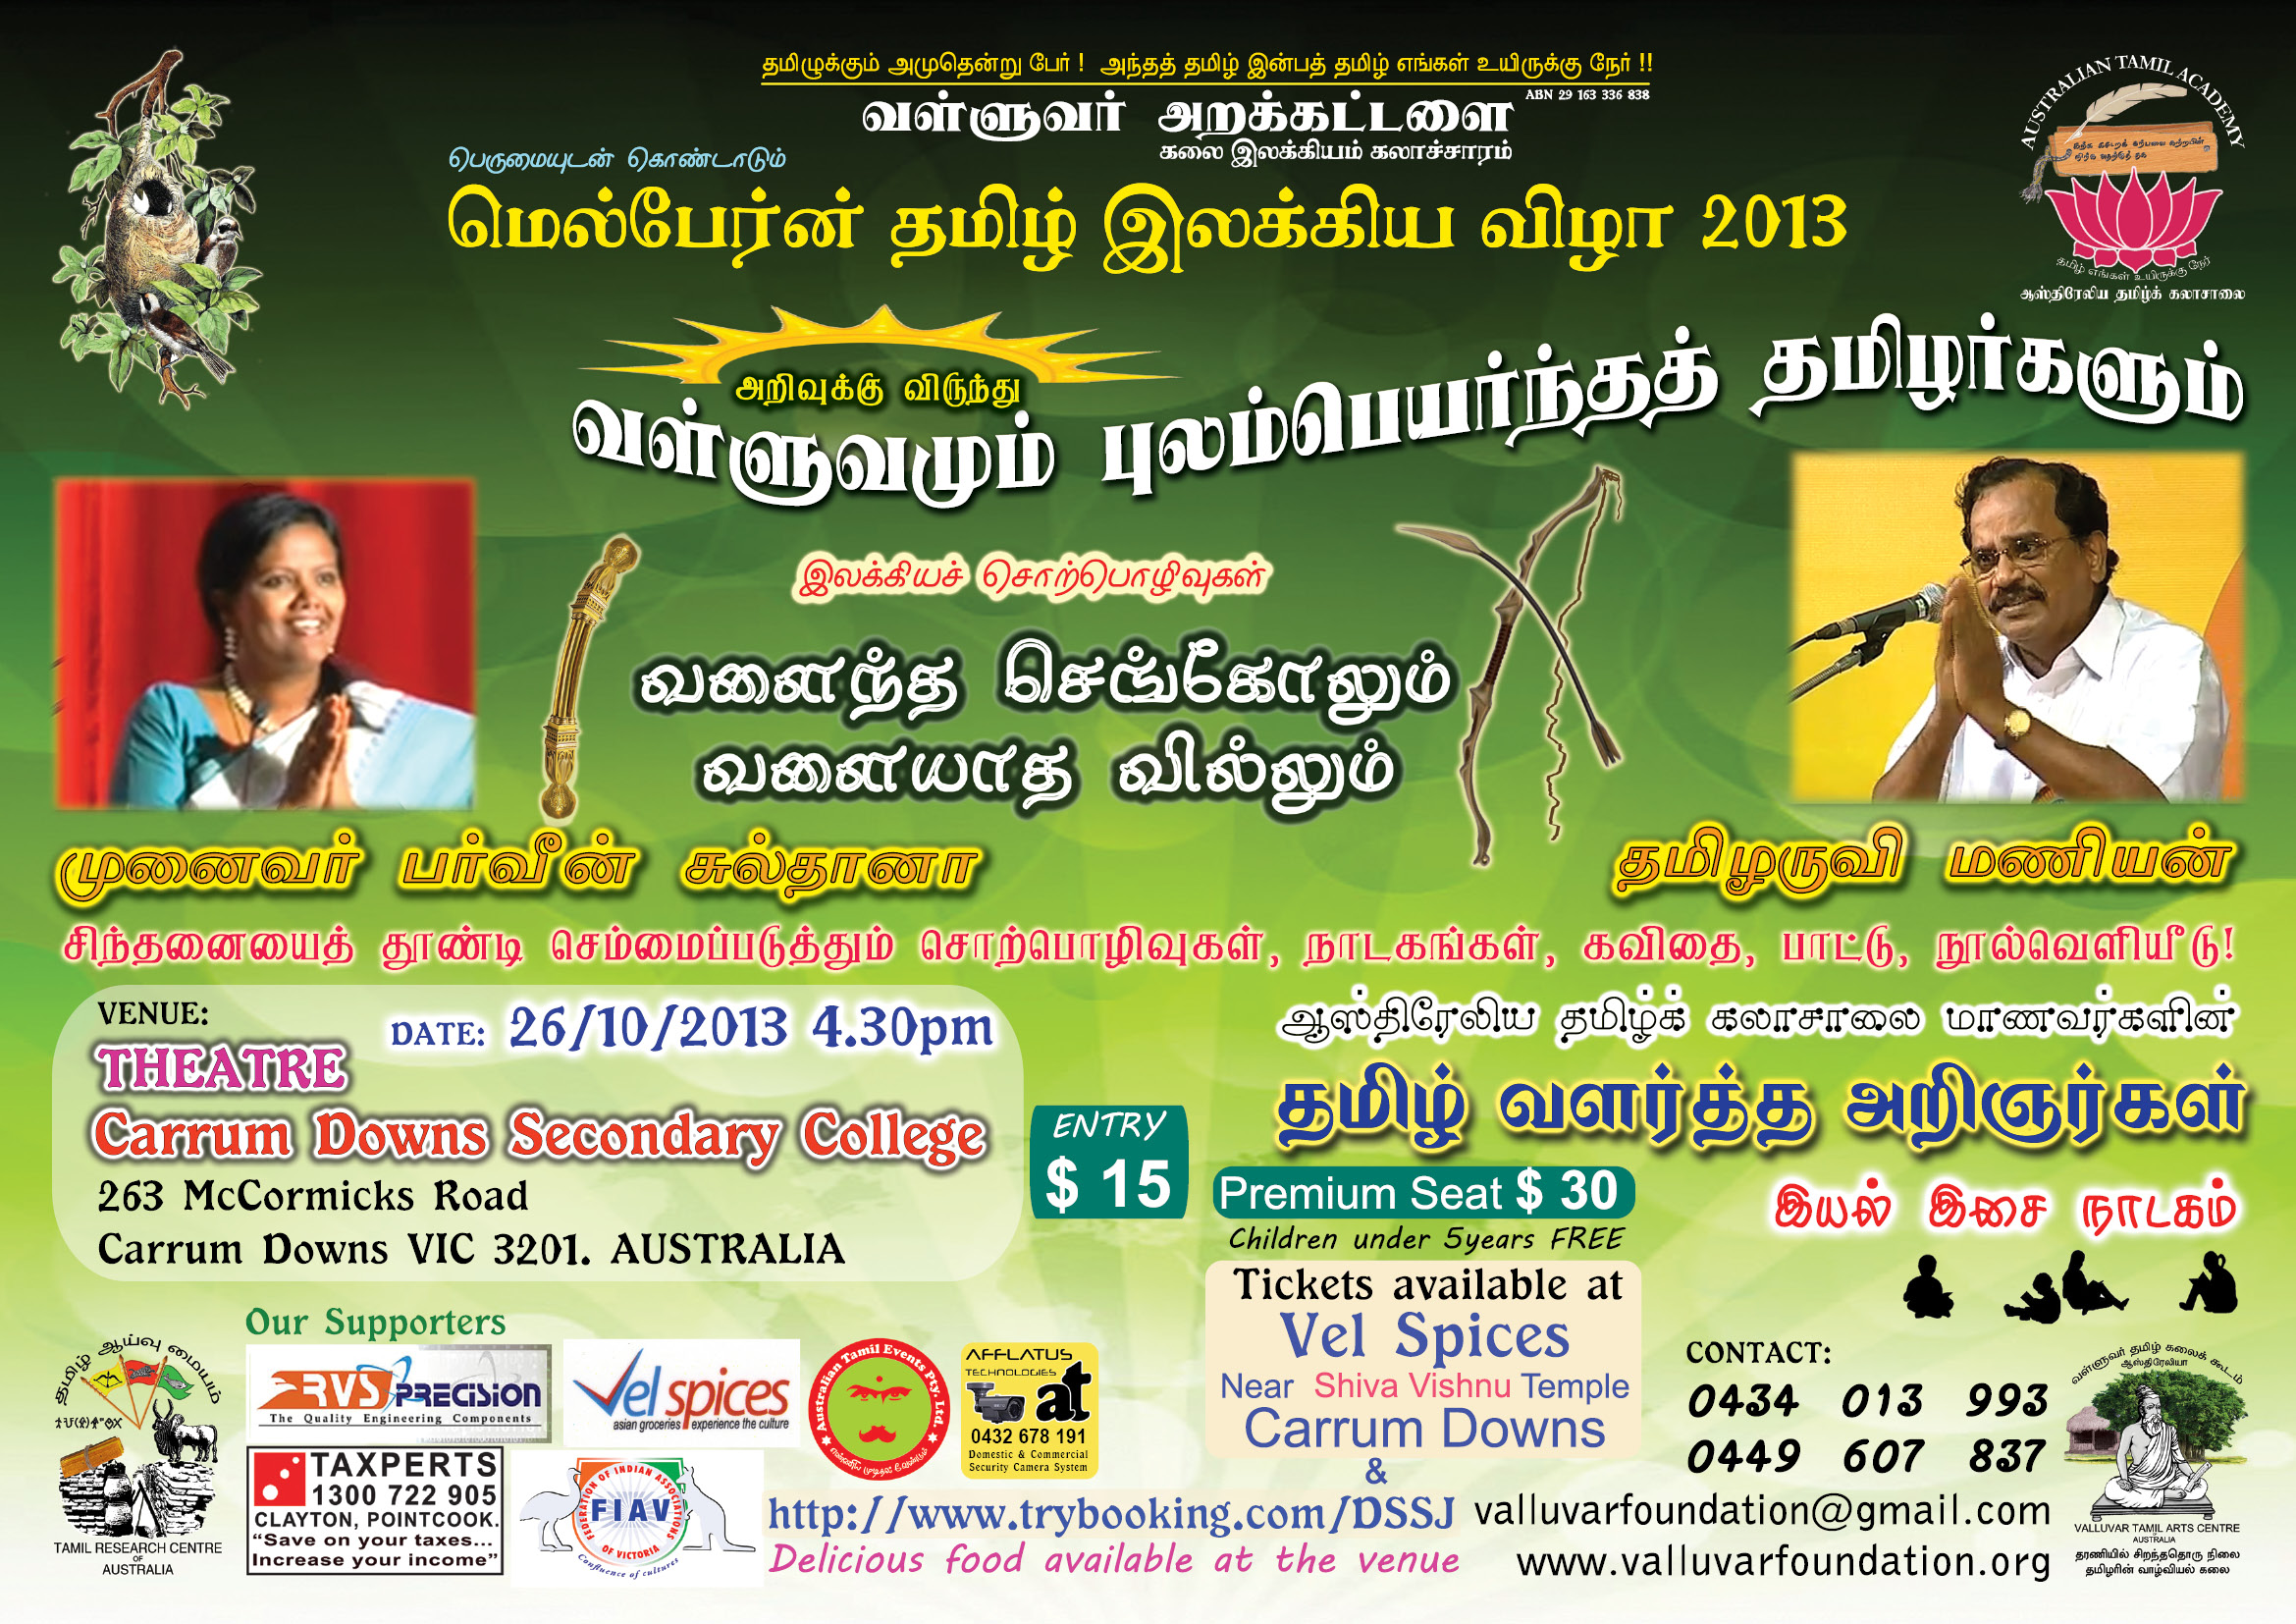 26 October 2013 – 2nd Annual Tamil Literary Festival & School Concert